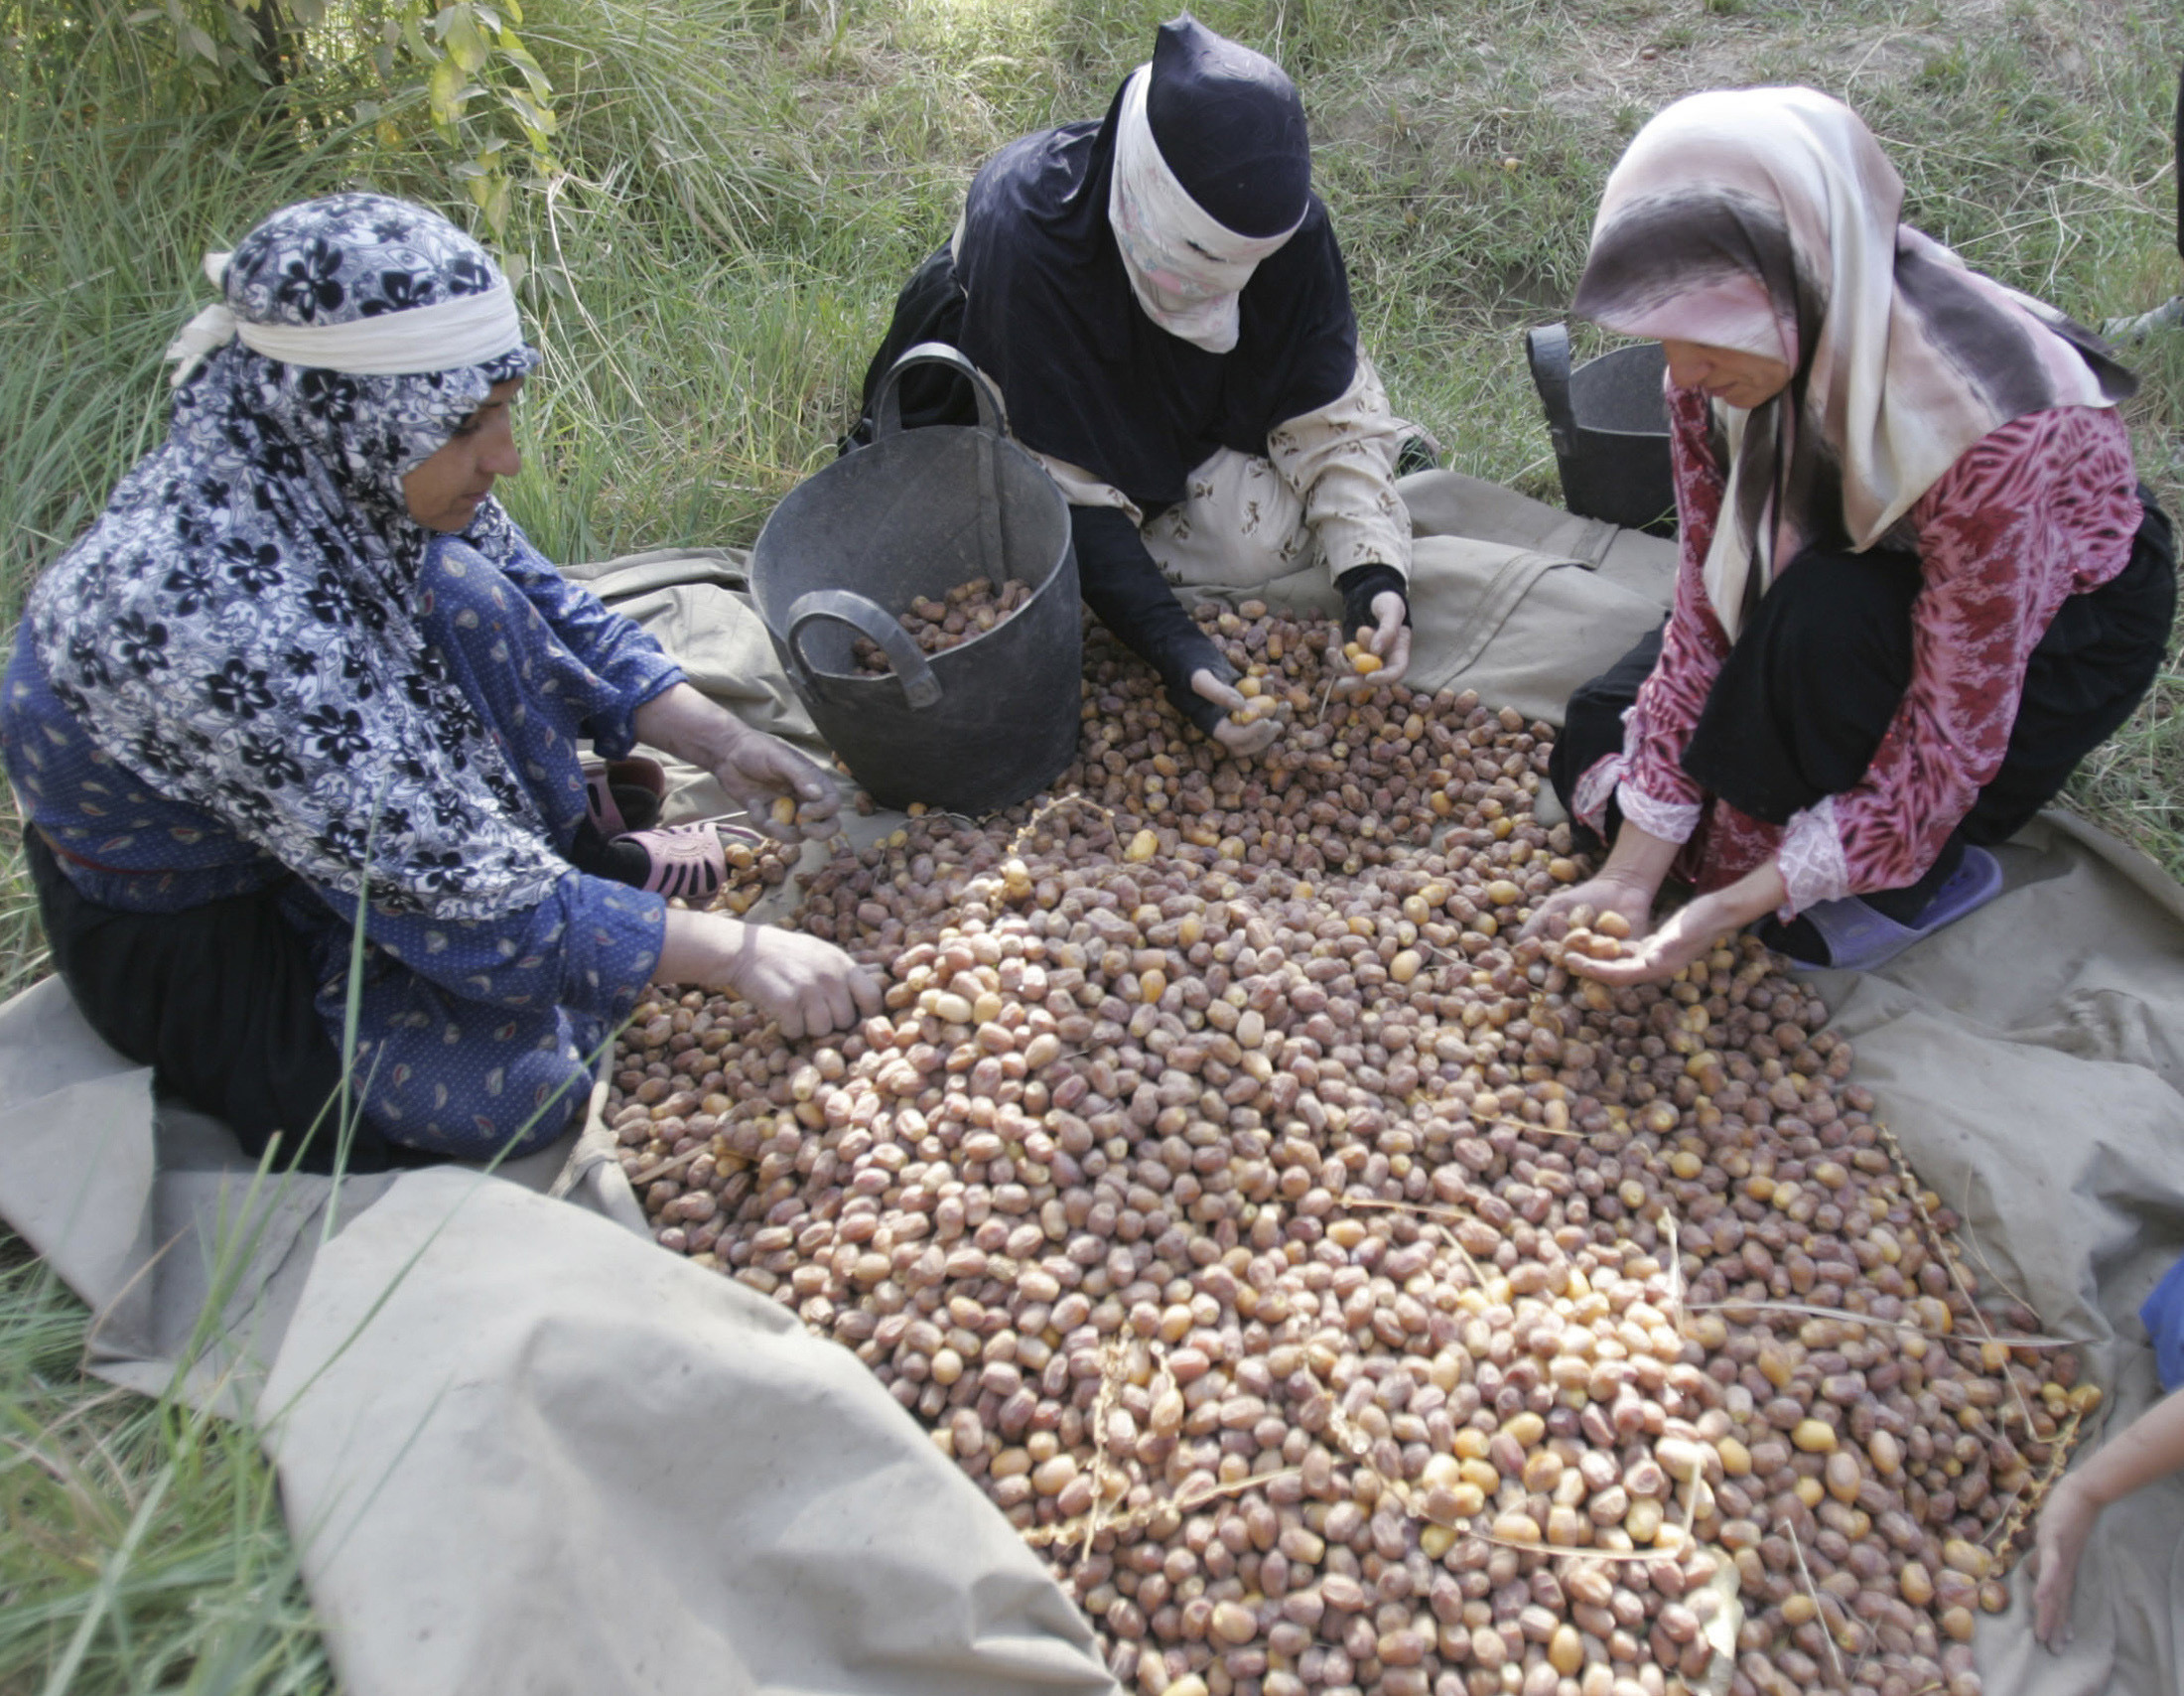 Villagers collect dates during a harvest in an orchard north of Kerbala, 80 km (50 miles) southwest of Baghdad, October 18, 2008. Picture taken October 18, 2008.    REUTERS/Mushtaq Muhammed (IRAQ) - GM1E4AK1AQ201